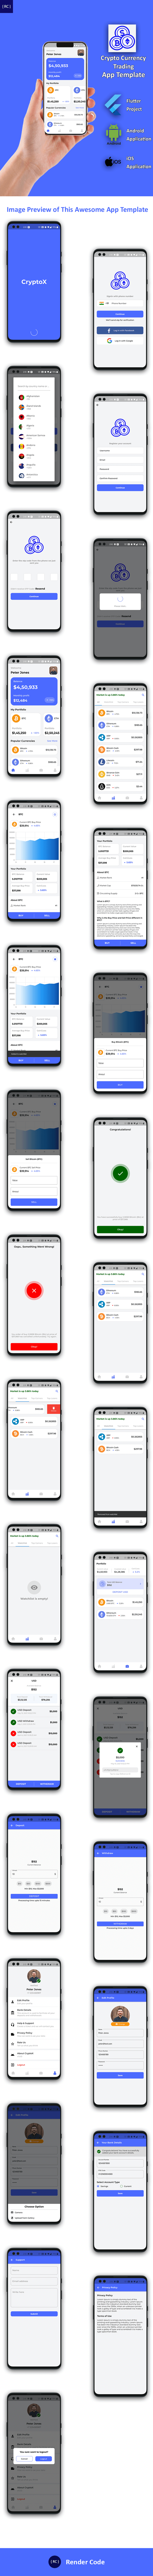 Crypto Currency Trading Android App Template + iOS App Template | FLUTTER | CryptoX - 4